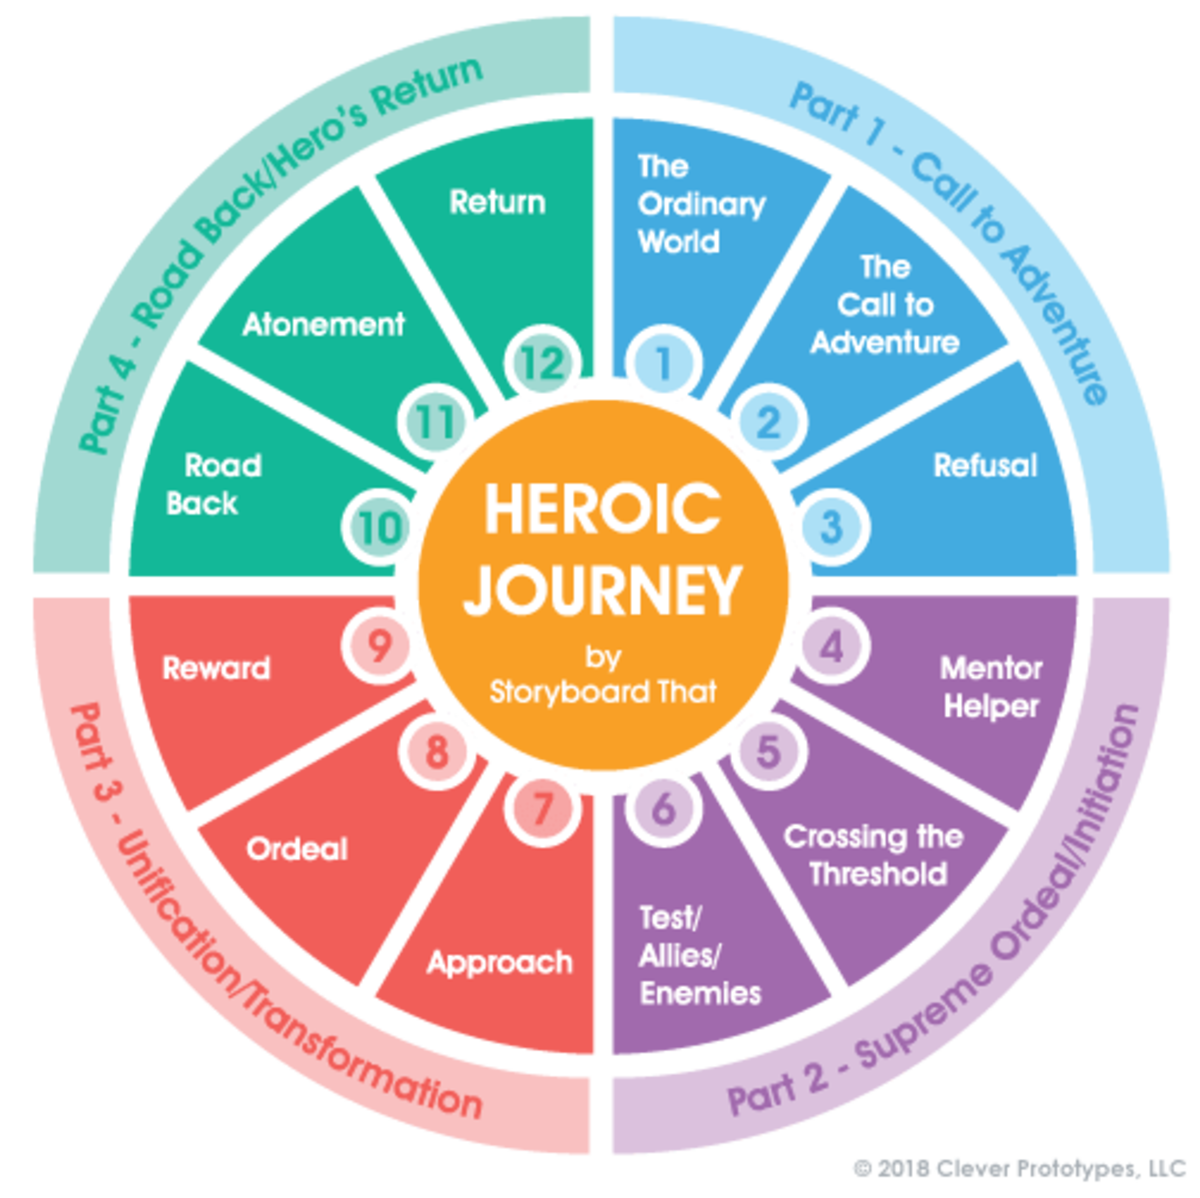 Joseph Campbell's Hero's Journey model of story